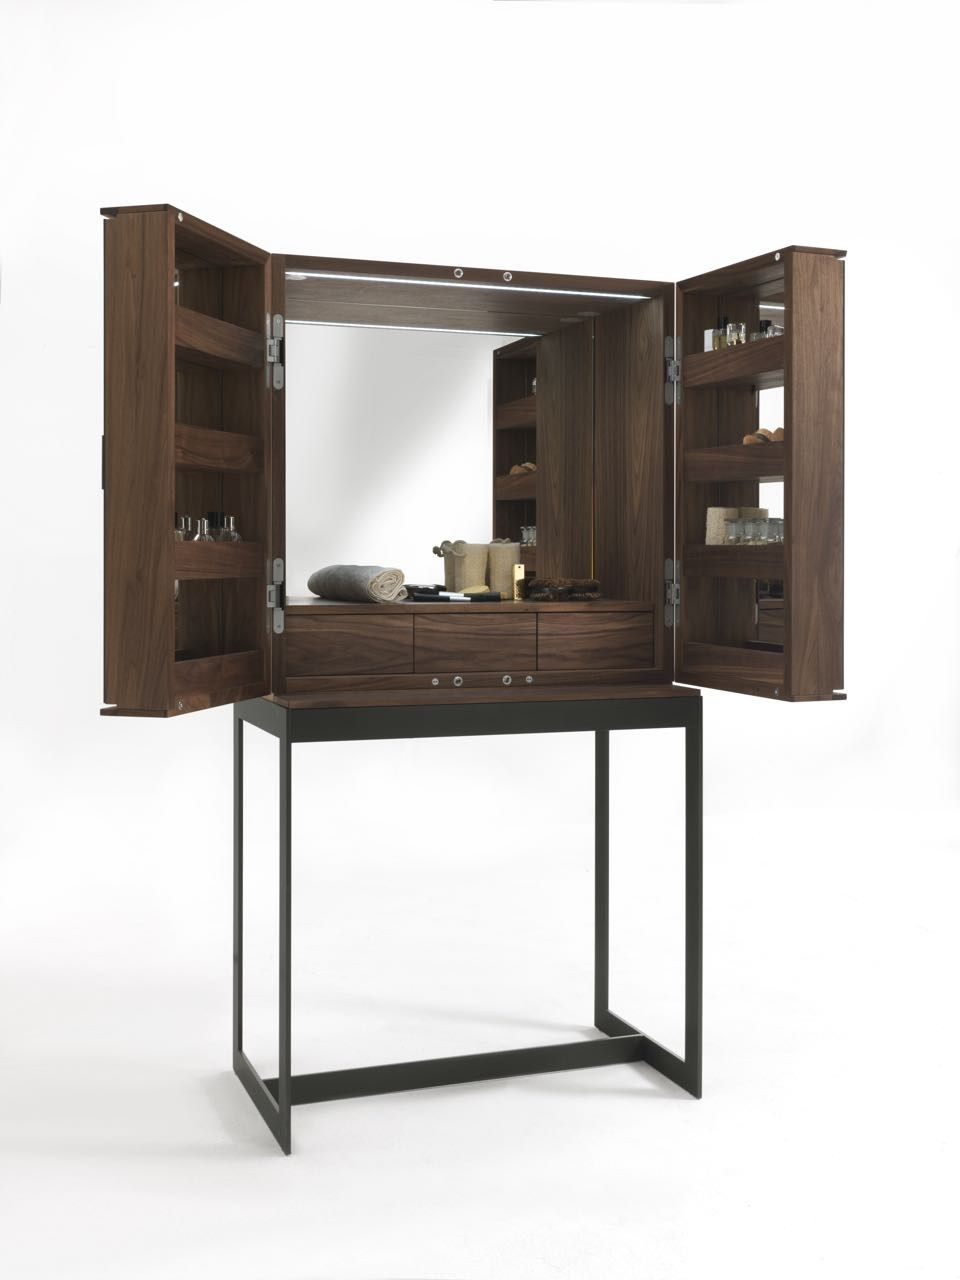 Dressing tables with mirrors reflect the beauty of the d cor for Makeup vanity table and mirror